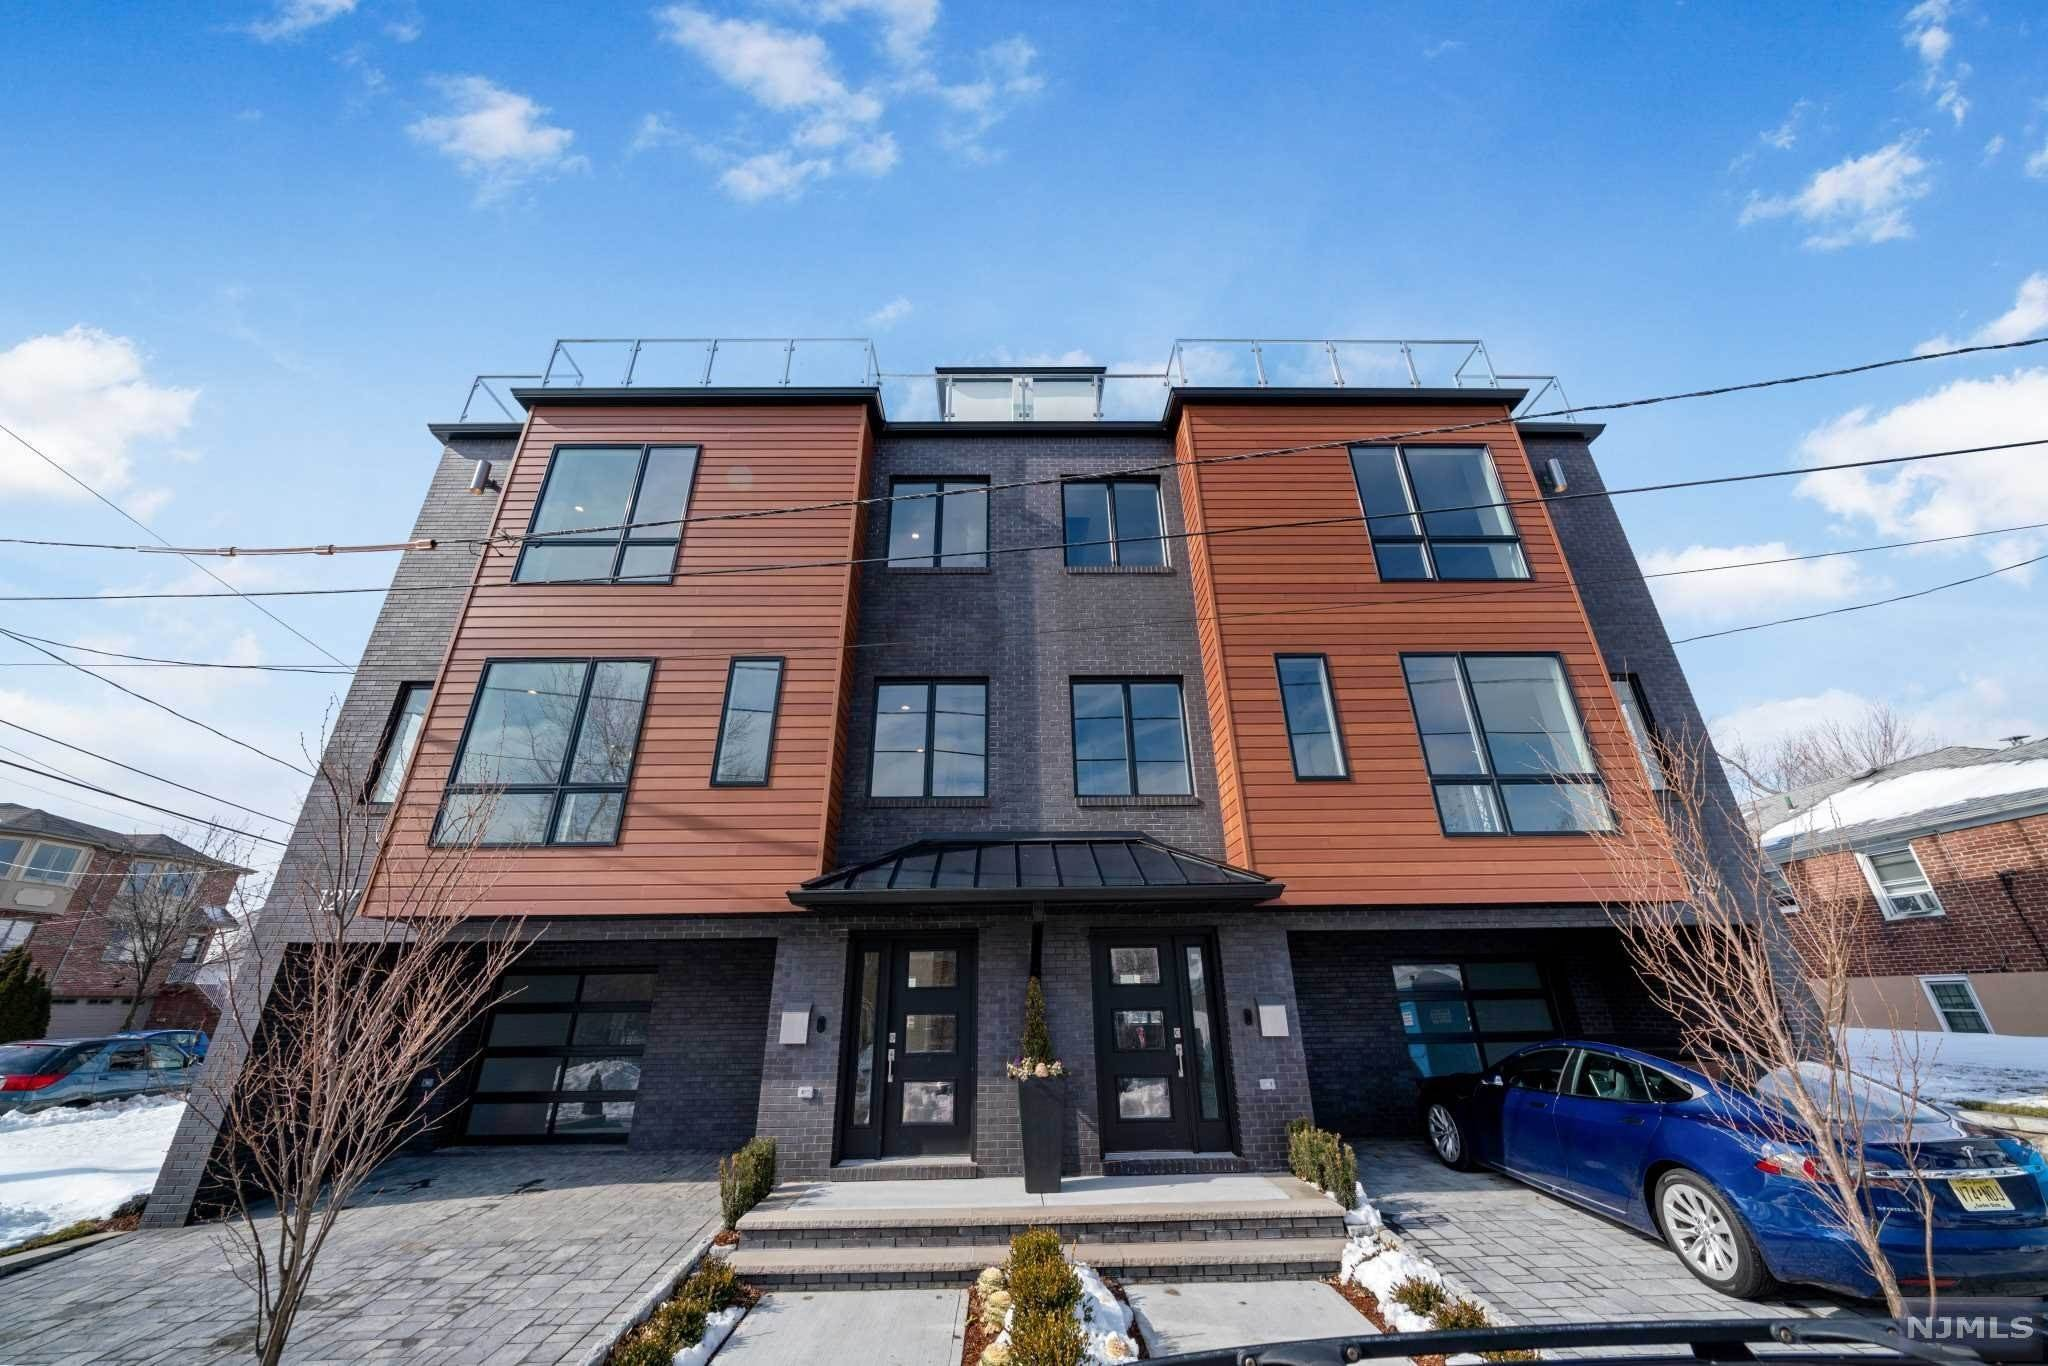 Condominium for Sale at 129 Rothwell Avenue Cliffside Park, New Jersey, 07010 United States